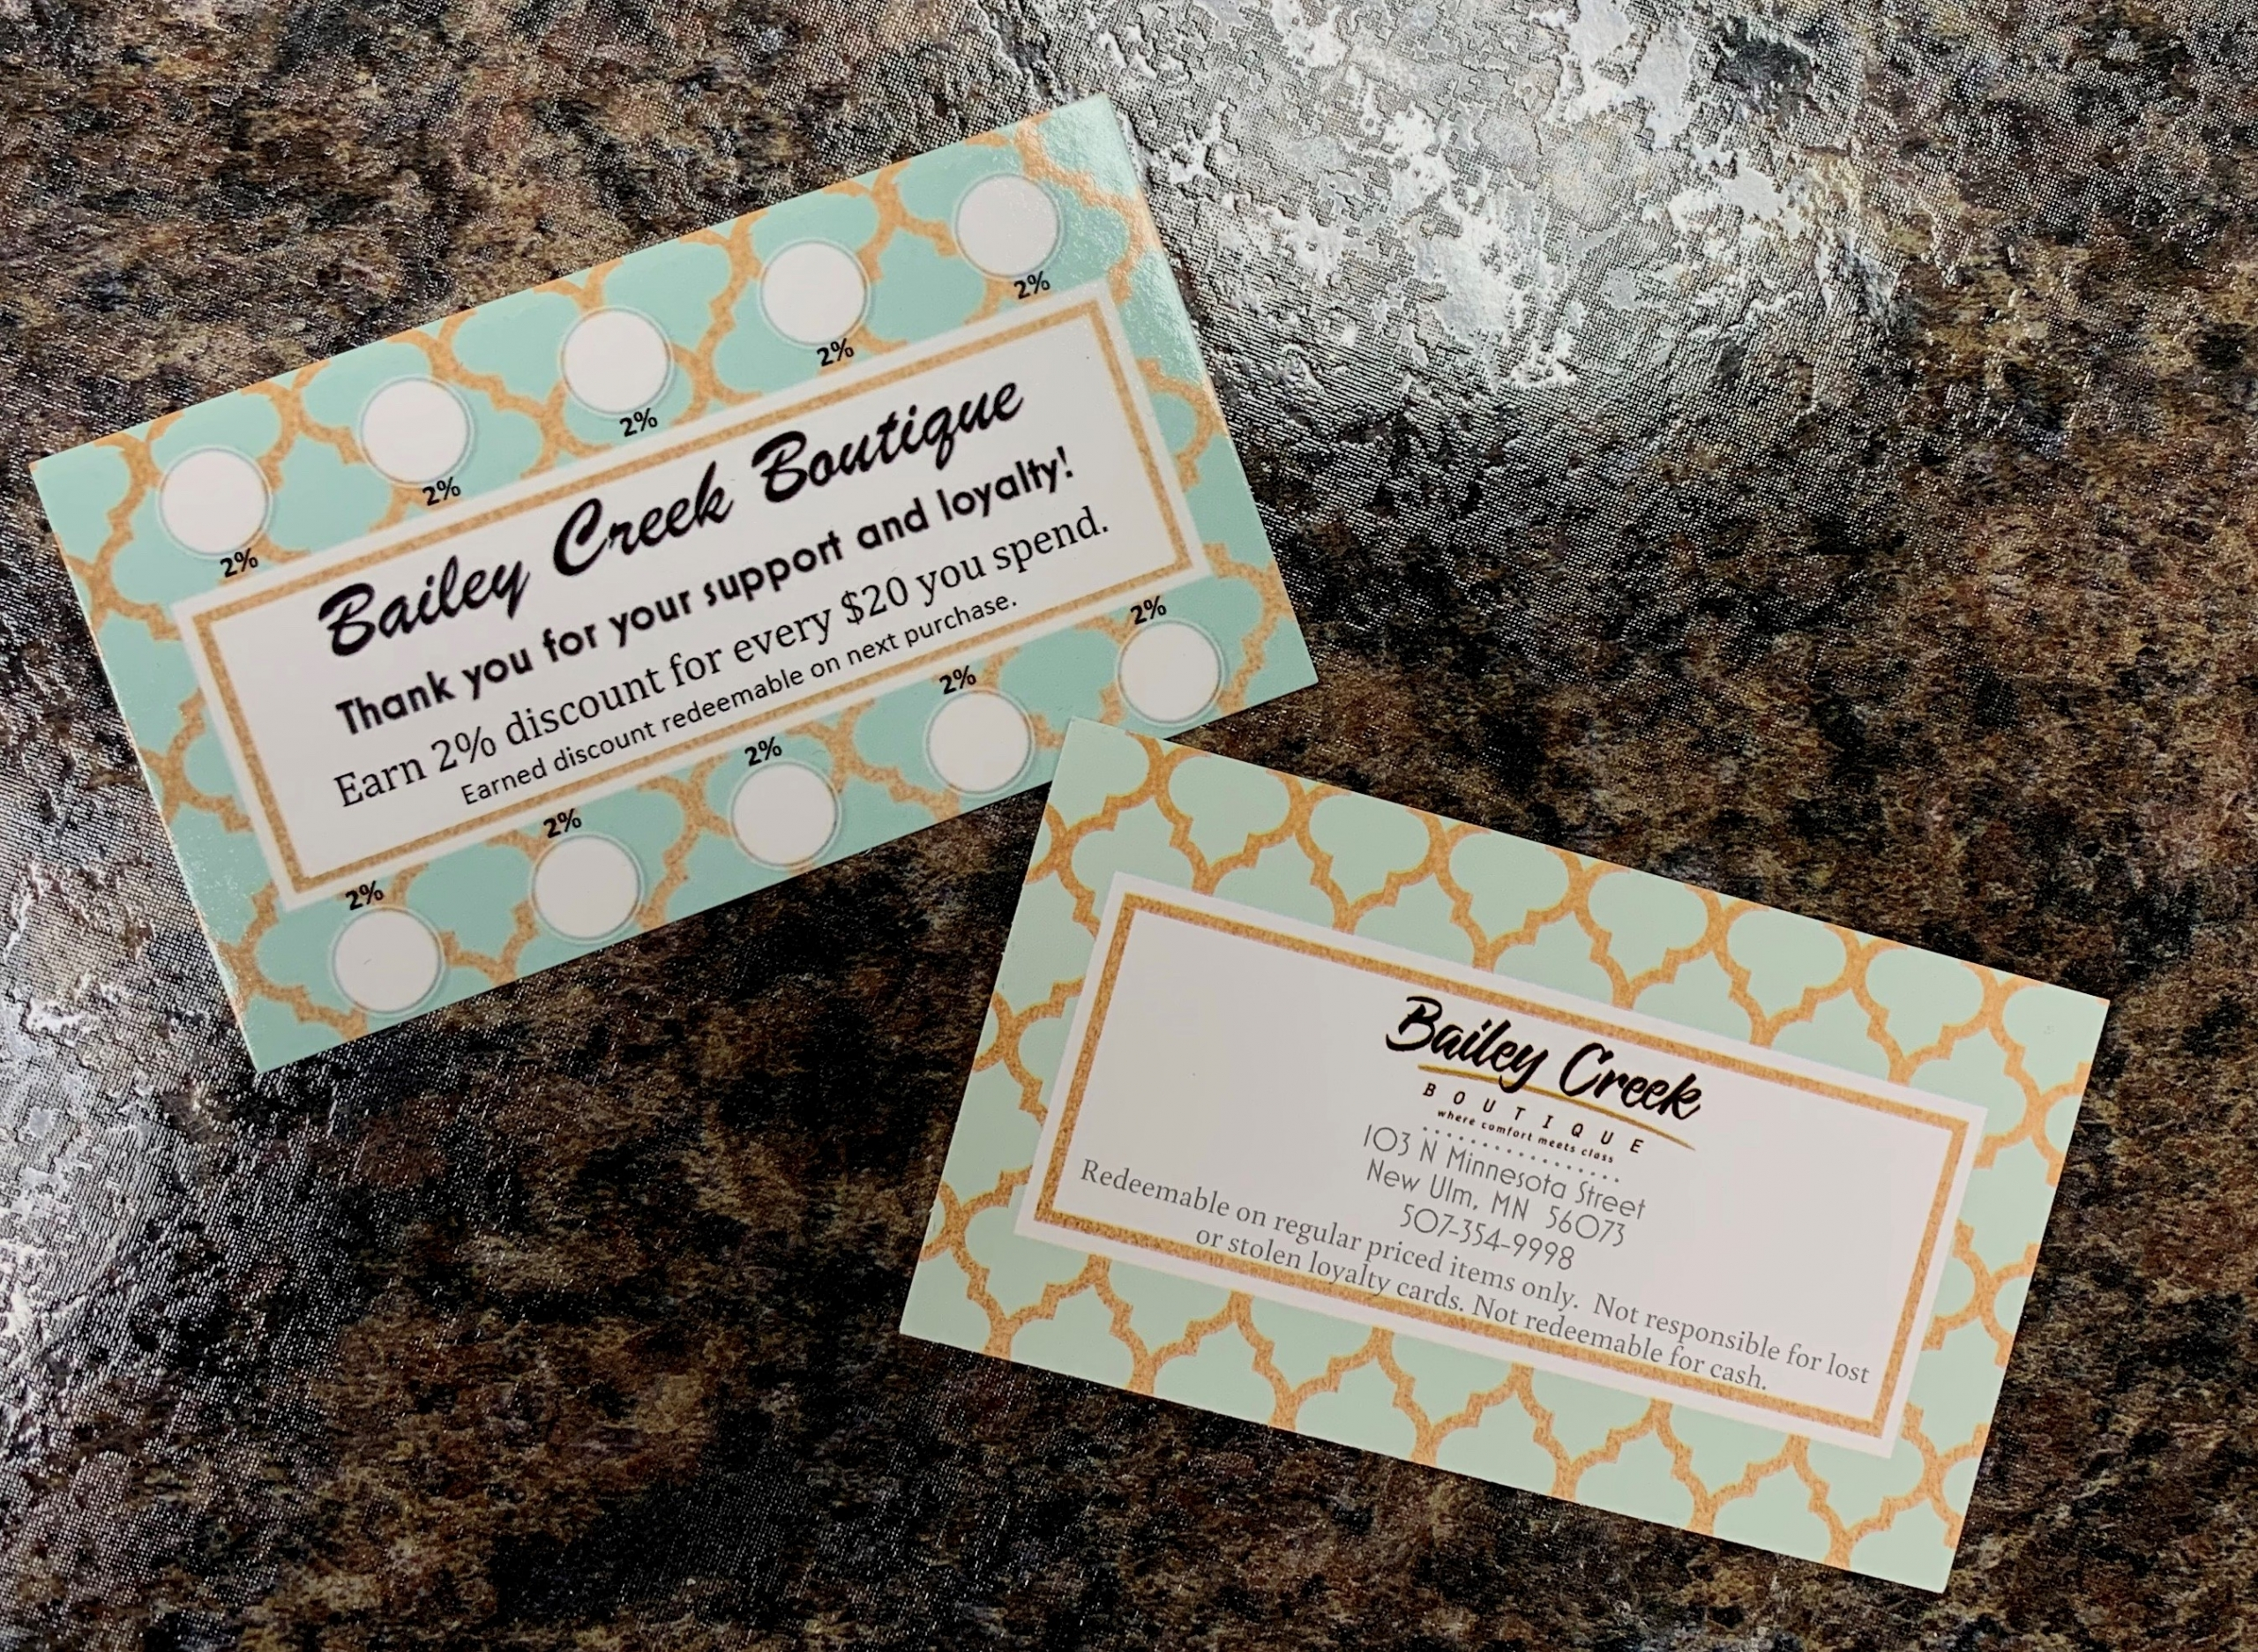 Bailey Creek Boutique Loyalty Card